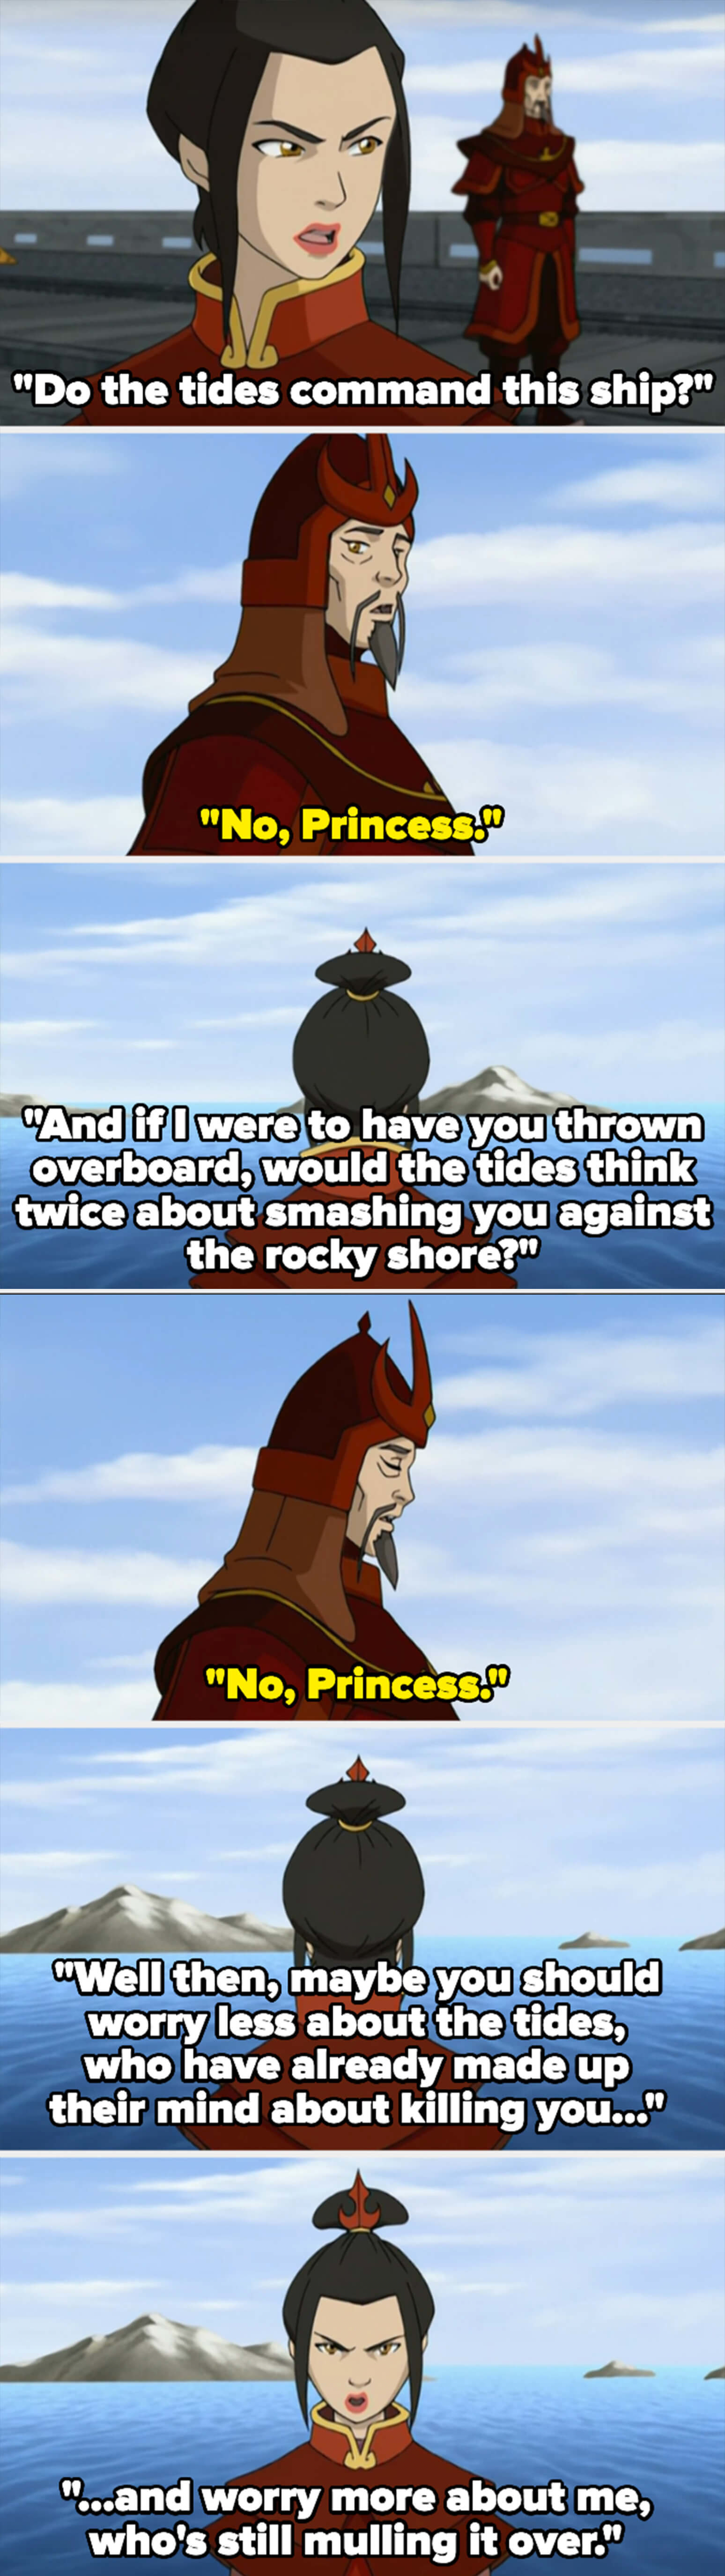 Azula asks if the tides command the ship — her subordinate says no, so she asks that if she threw him overboard, if the tides would think twice about killing him. He replies no, so she says he should worry more about her and less about the tides